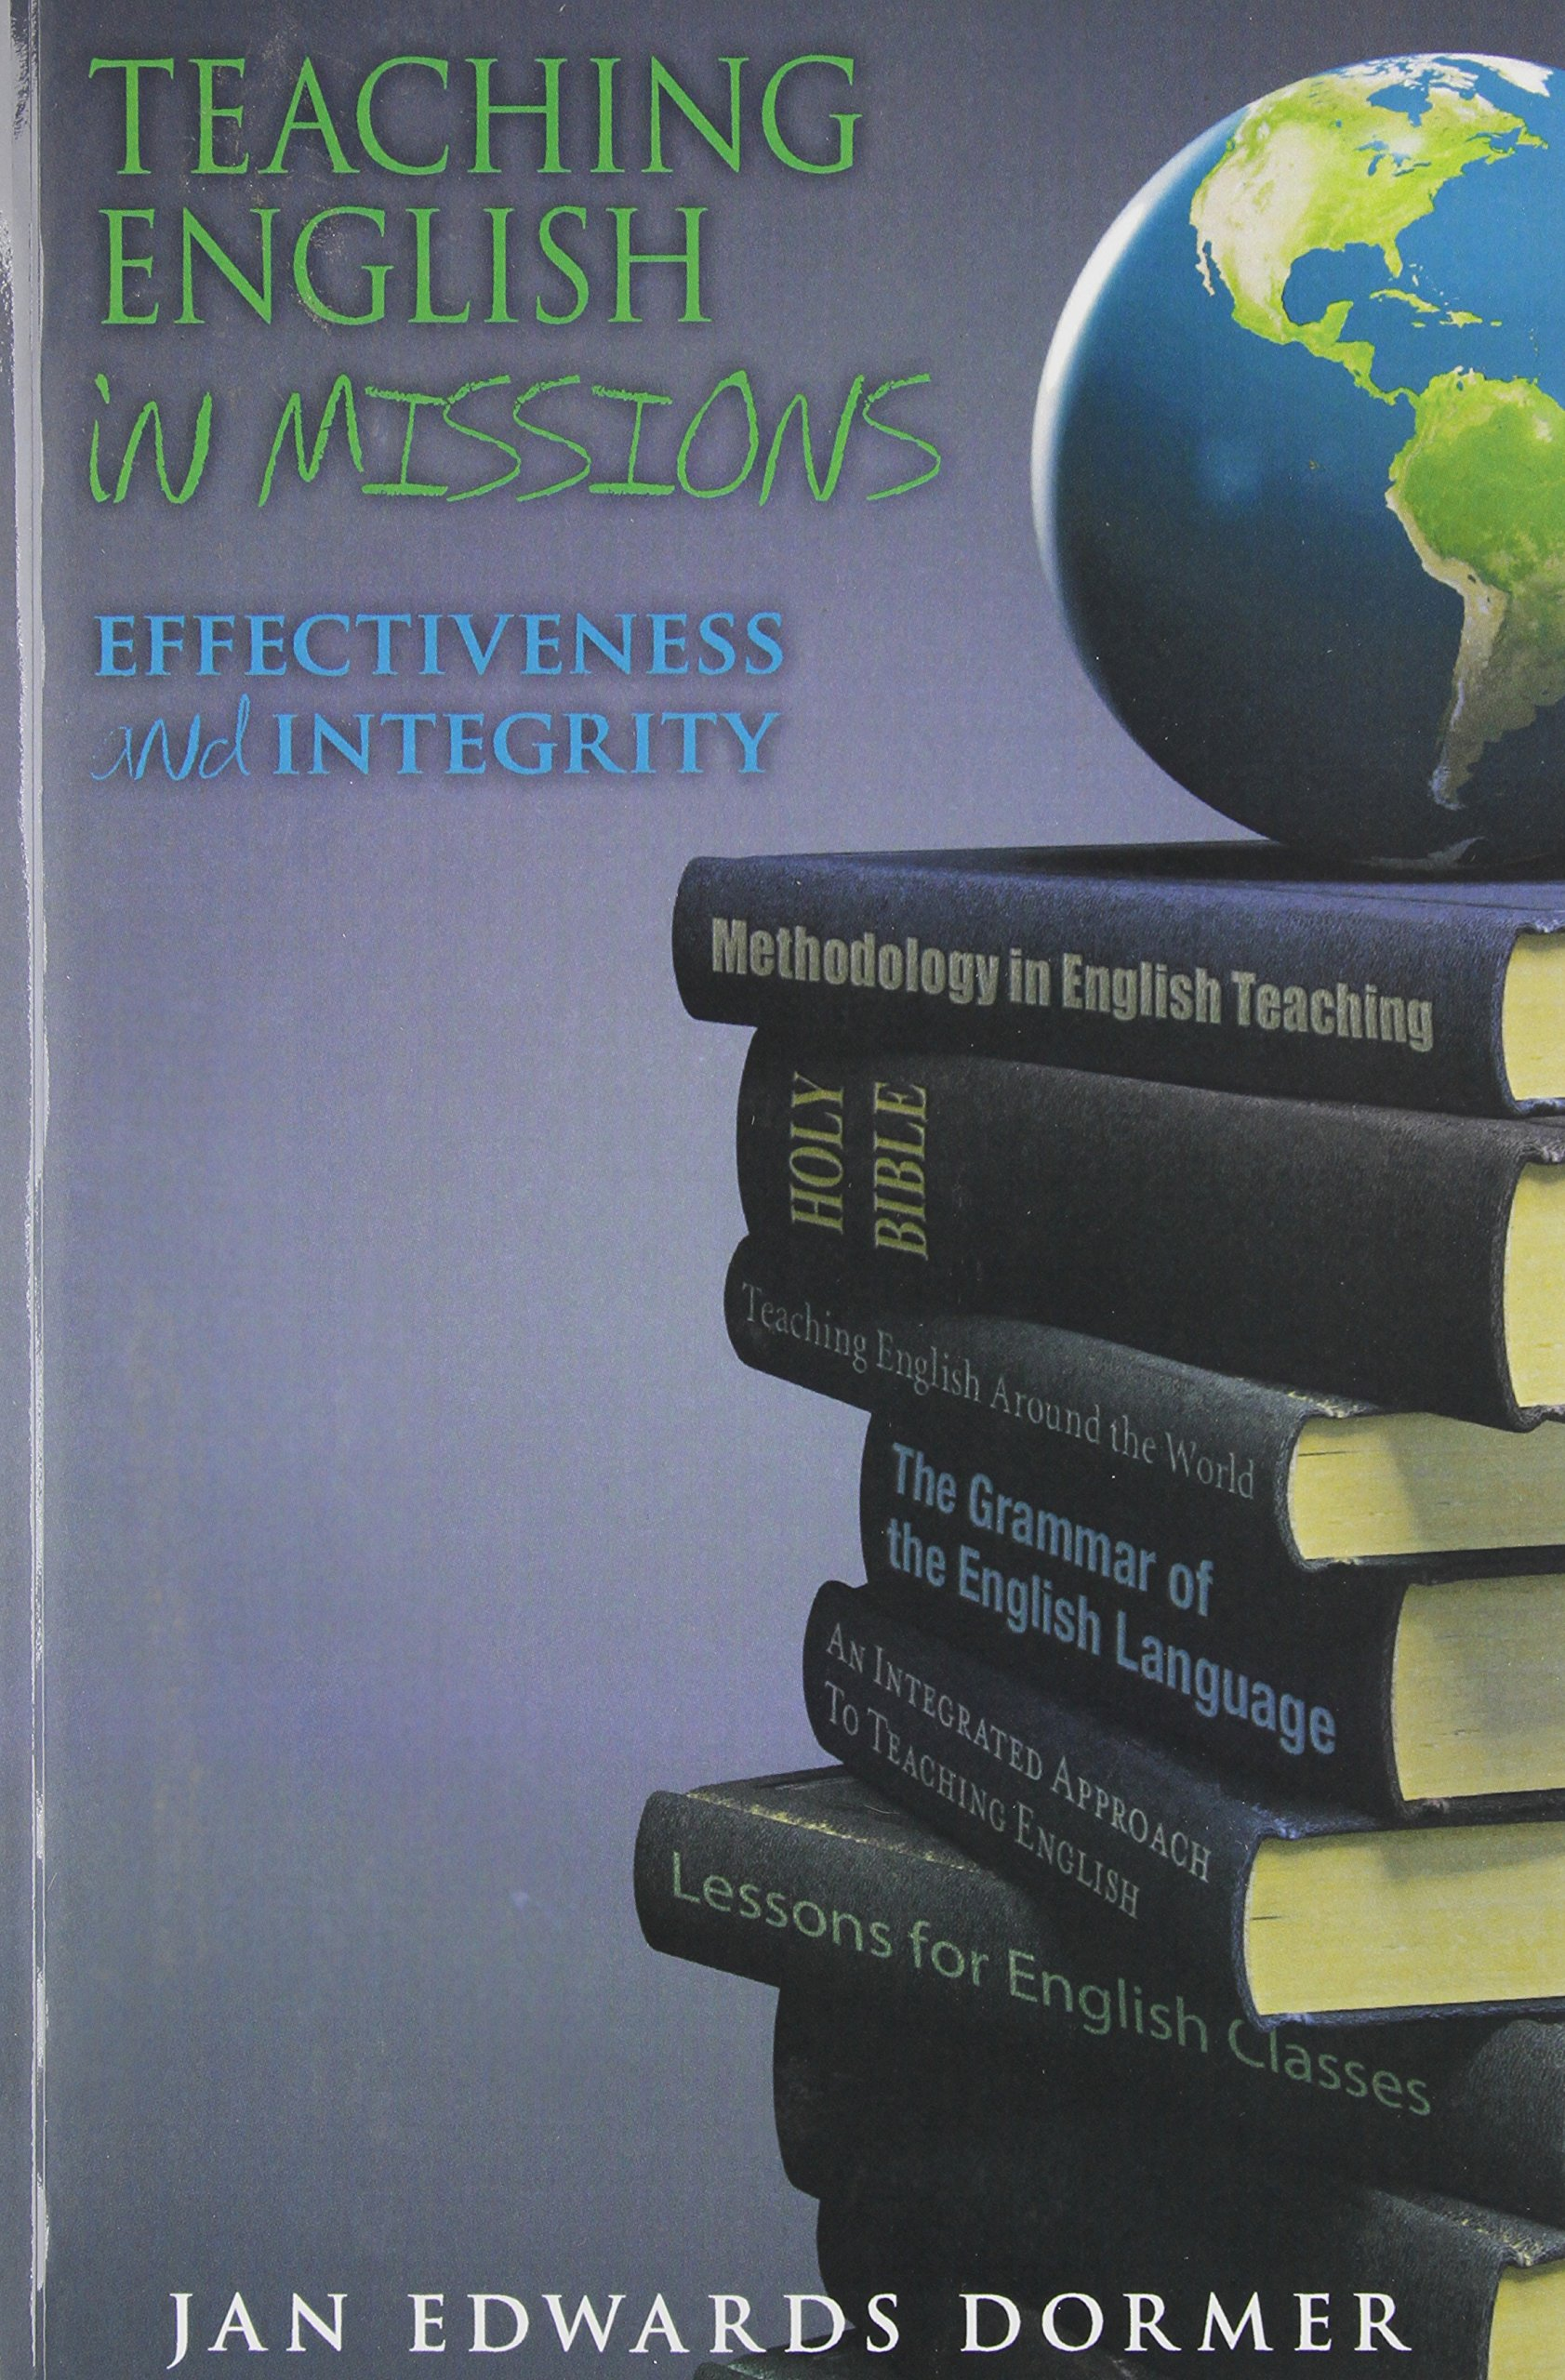 Teaching English in Missions: Effectiveness and Integrity by WCL